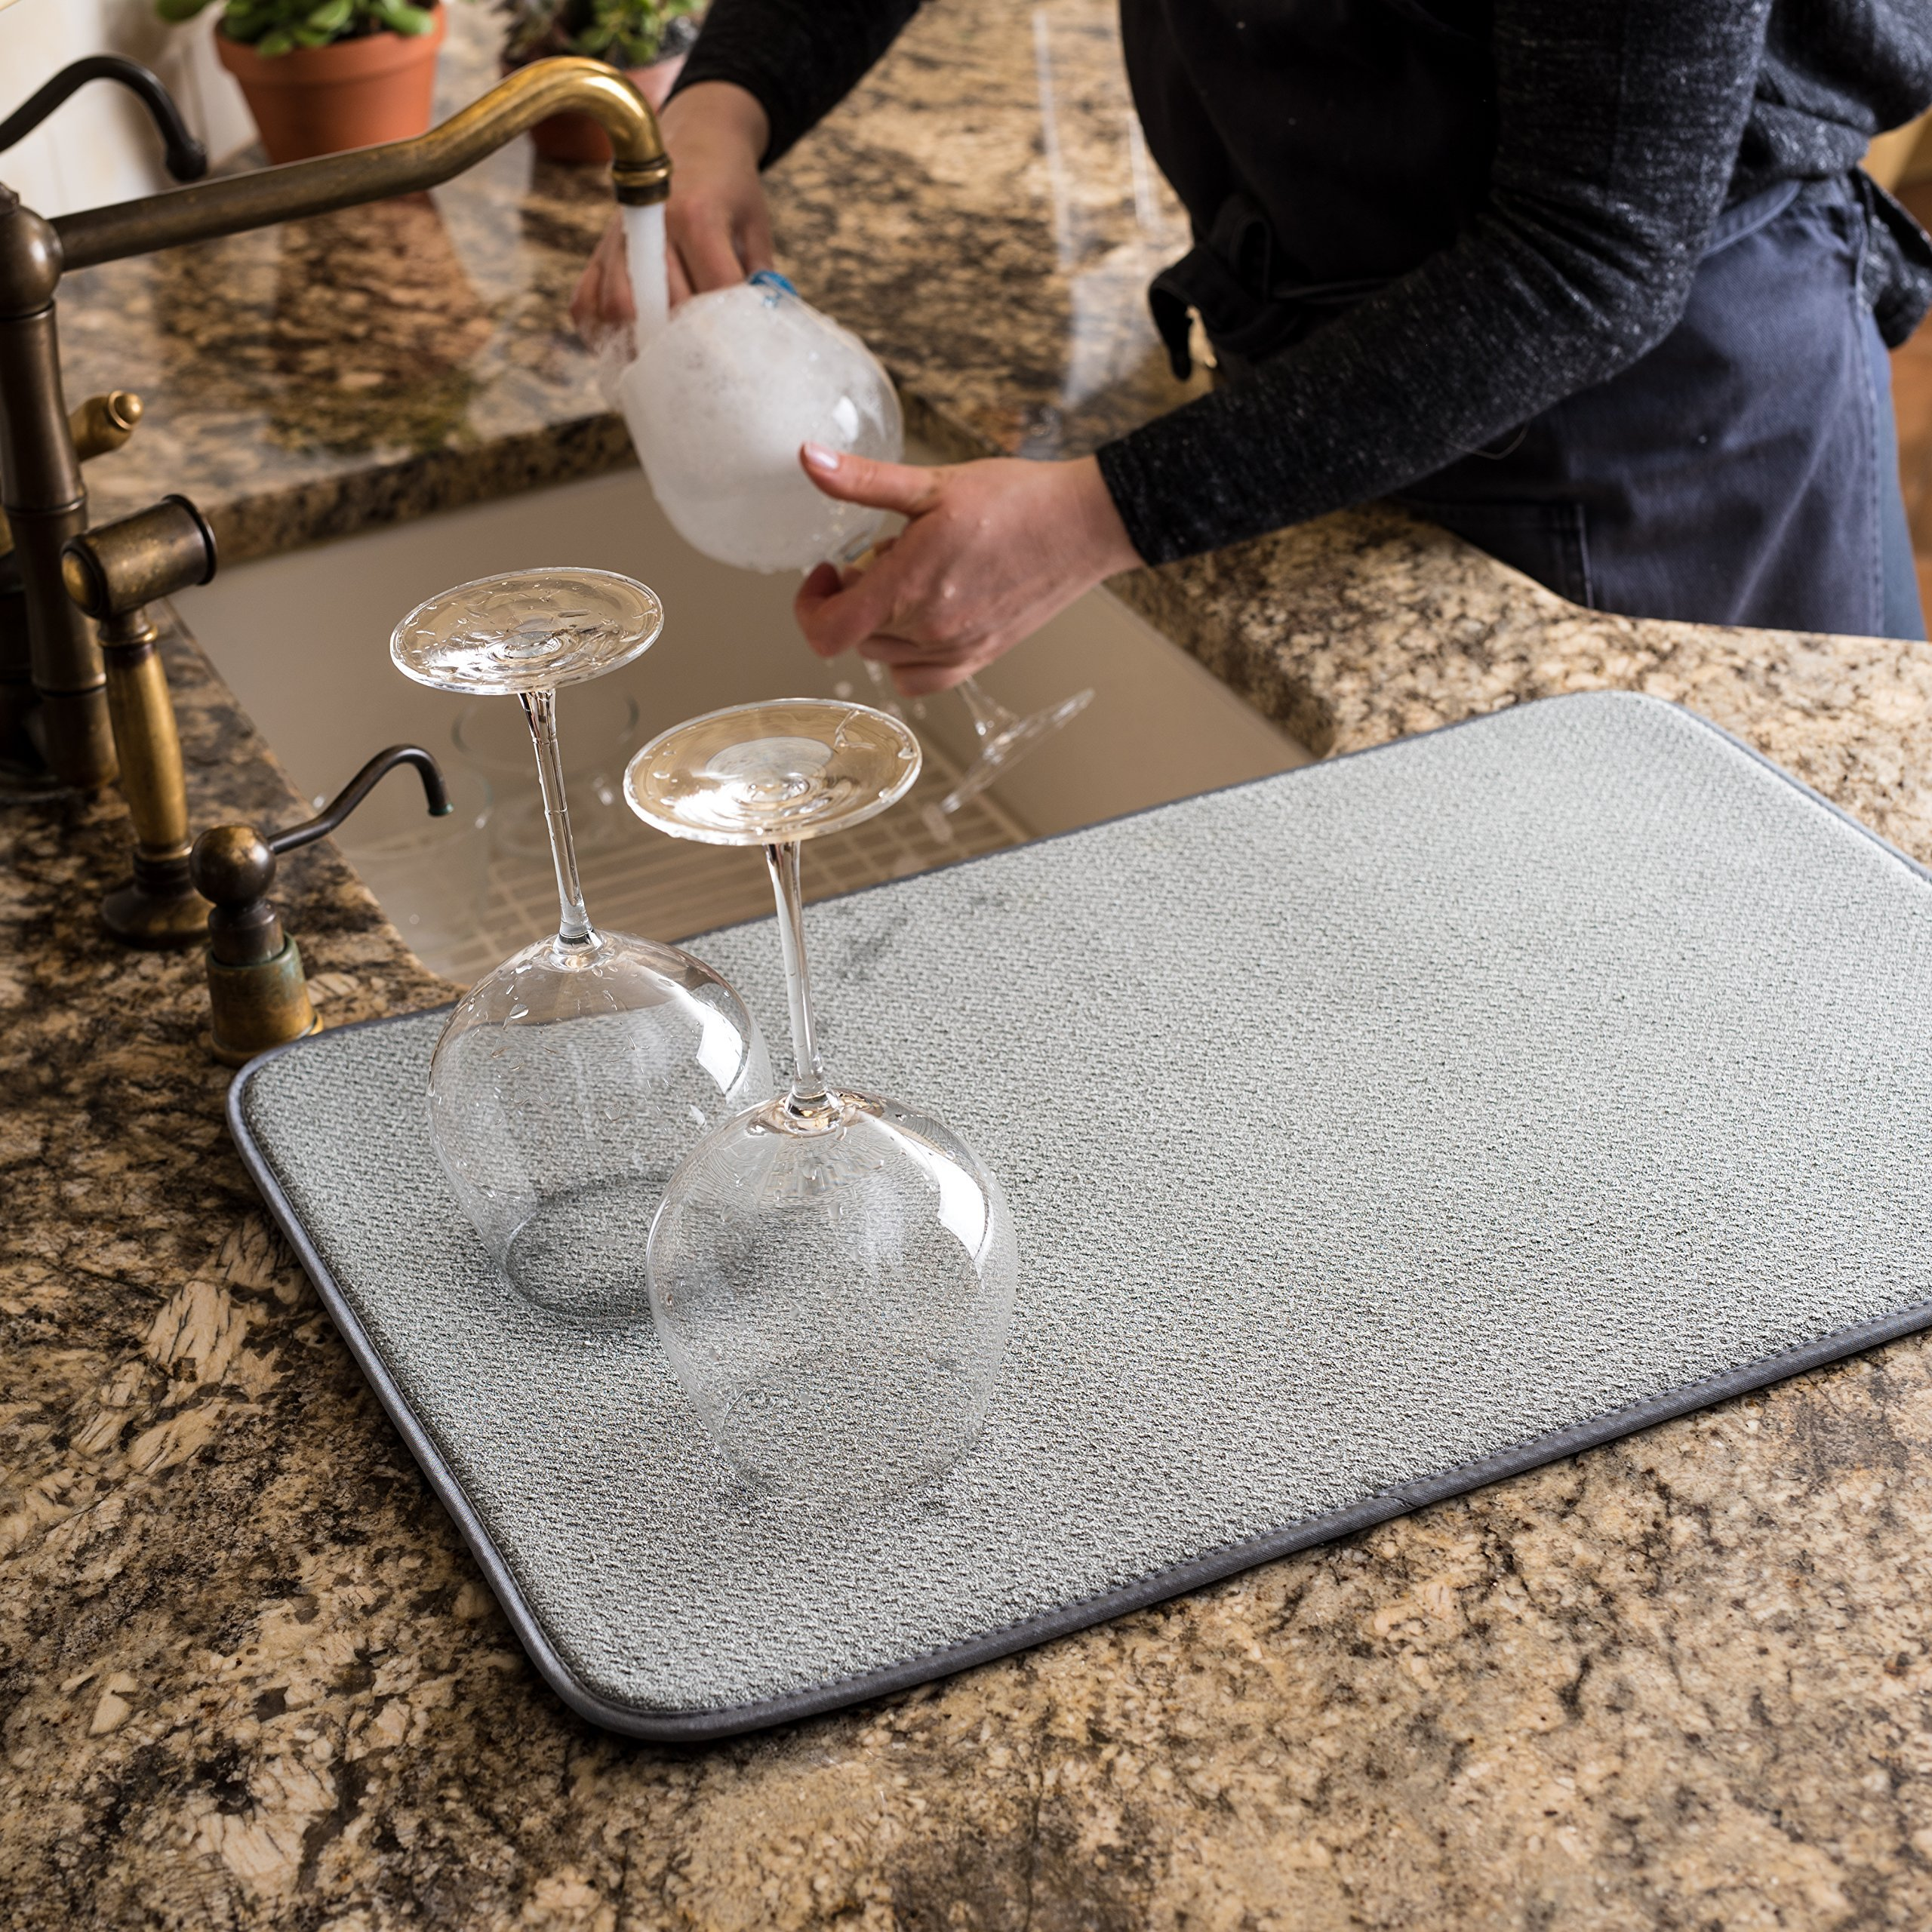 XXL Dish Mat 24'' x 17'' (LARGEST MAT) Microfiber Dish Drying Mat, Super absorbent by Bellemain by Bellemain (Image #3)